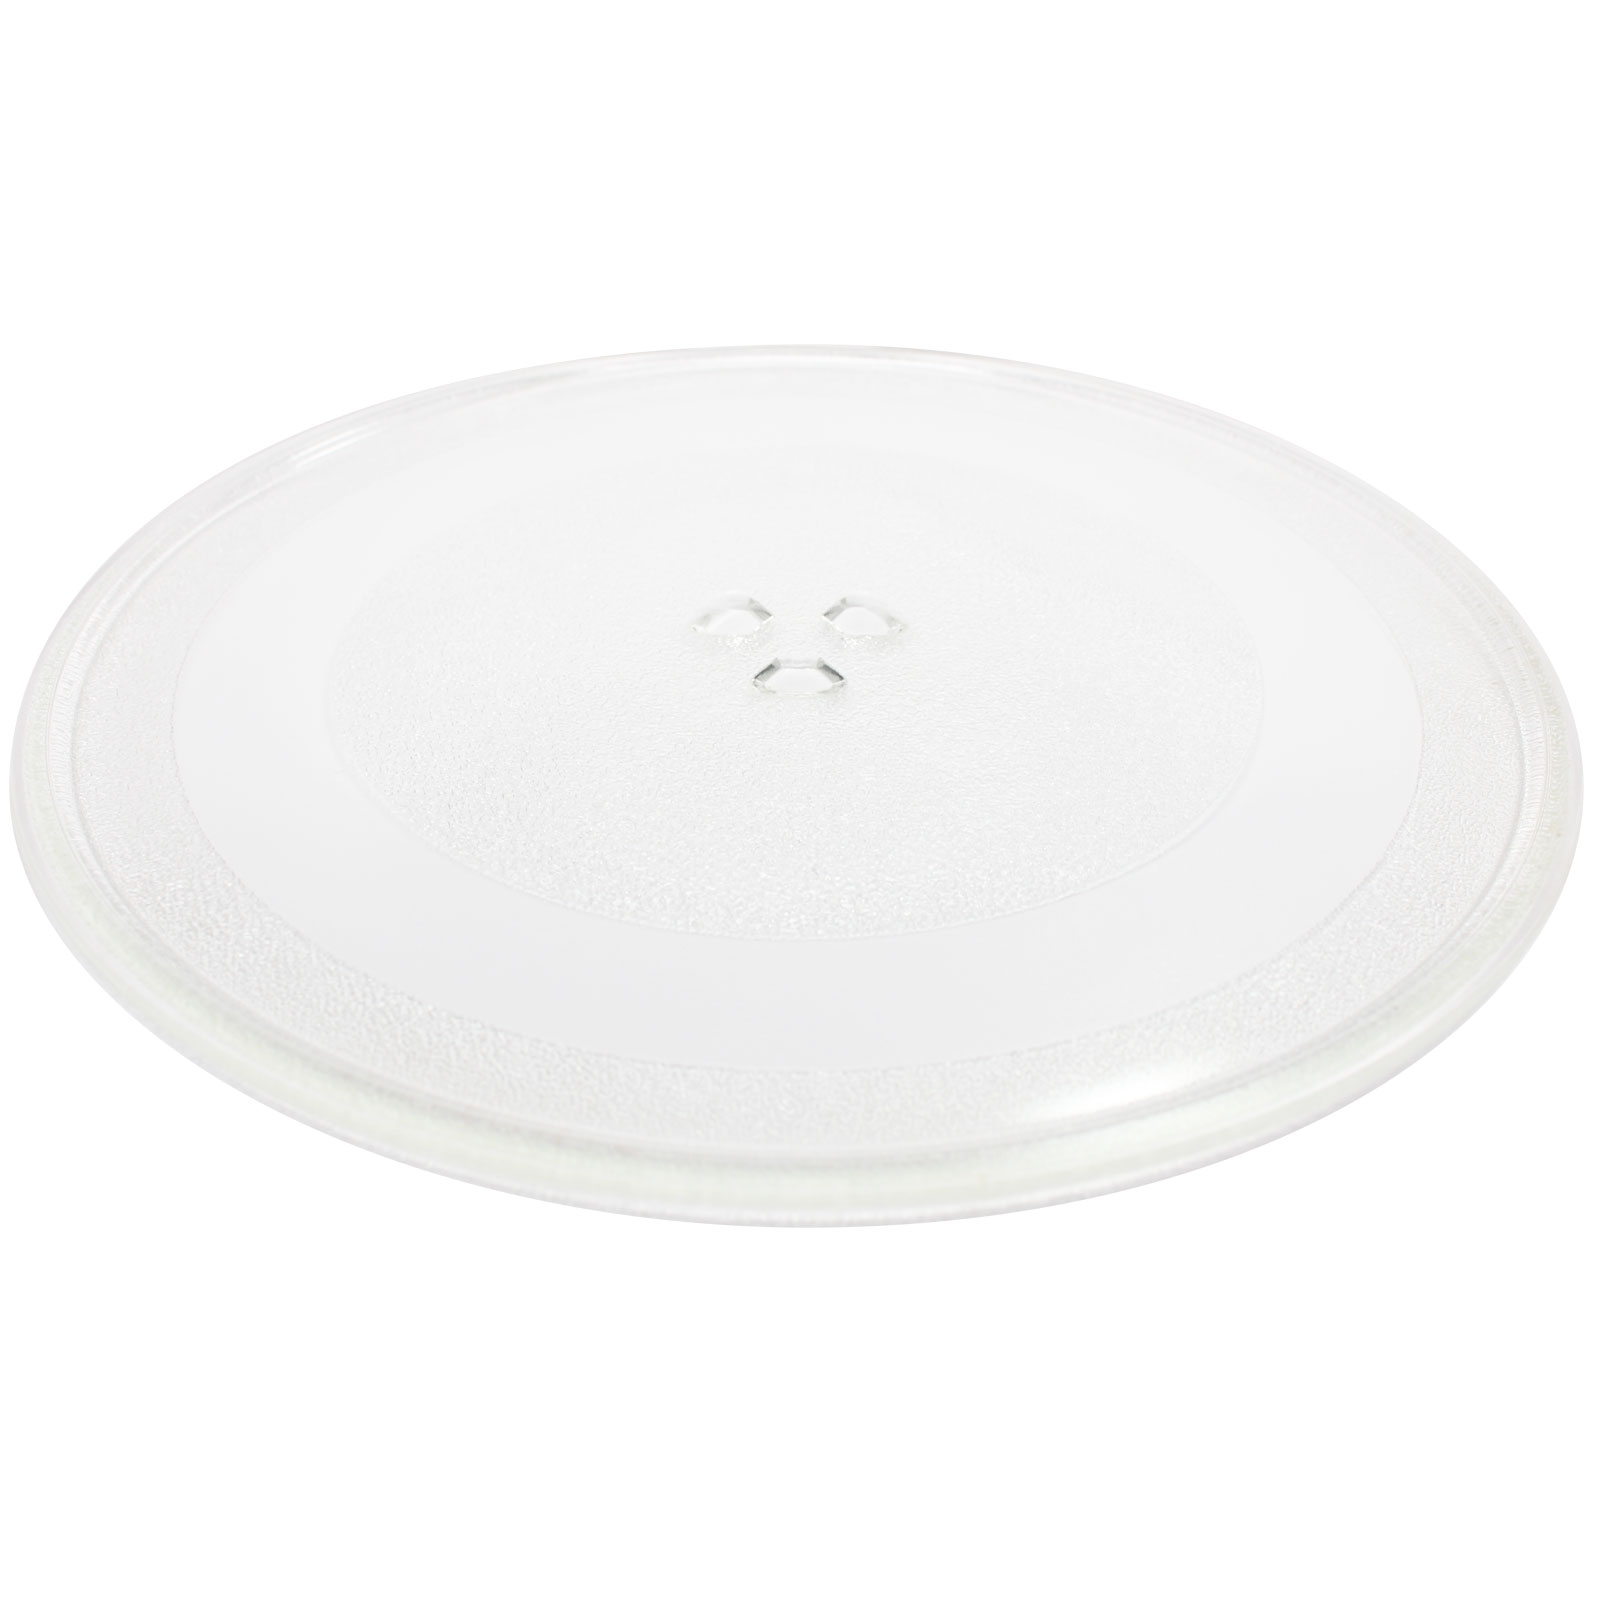 325mm JVM1490SH01 Microwave Glass Plate Replacement for General Electric//G.E Compatible with General Electric//G.E 12 3//4 WB49X10074 Microwave Glass Turntable Tray